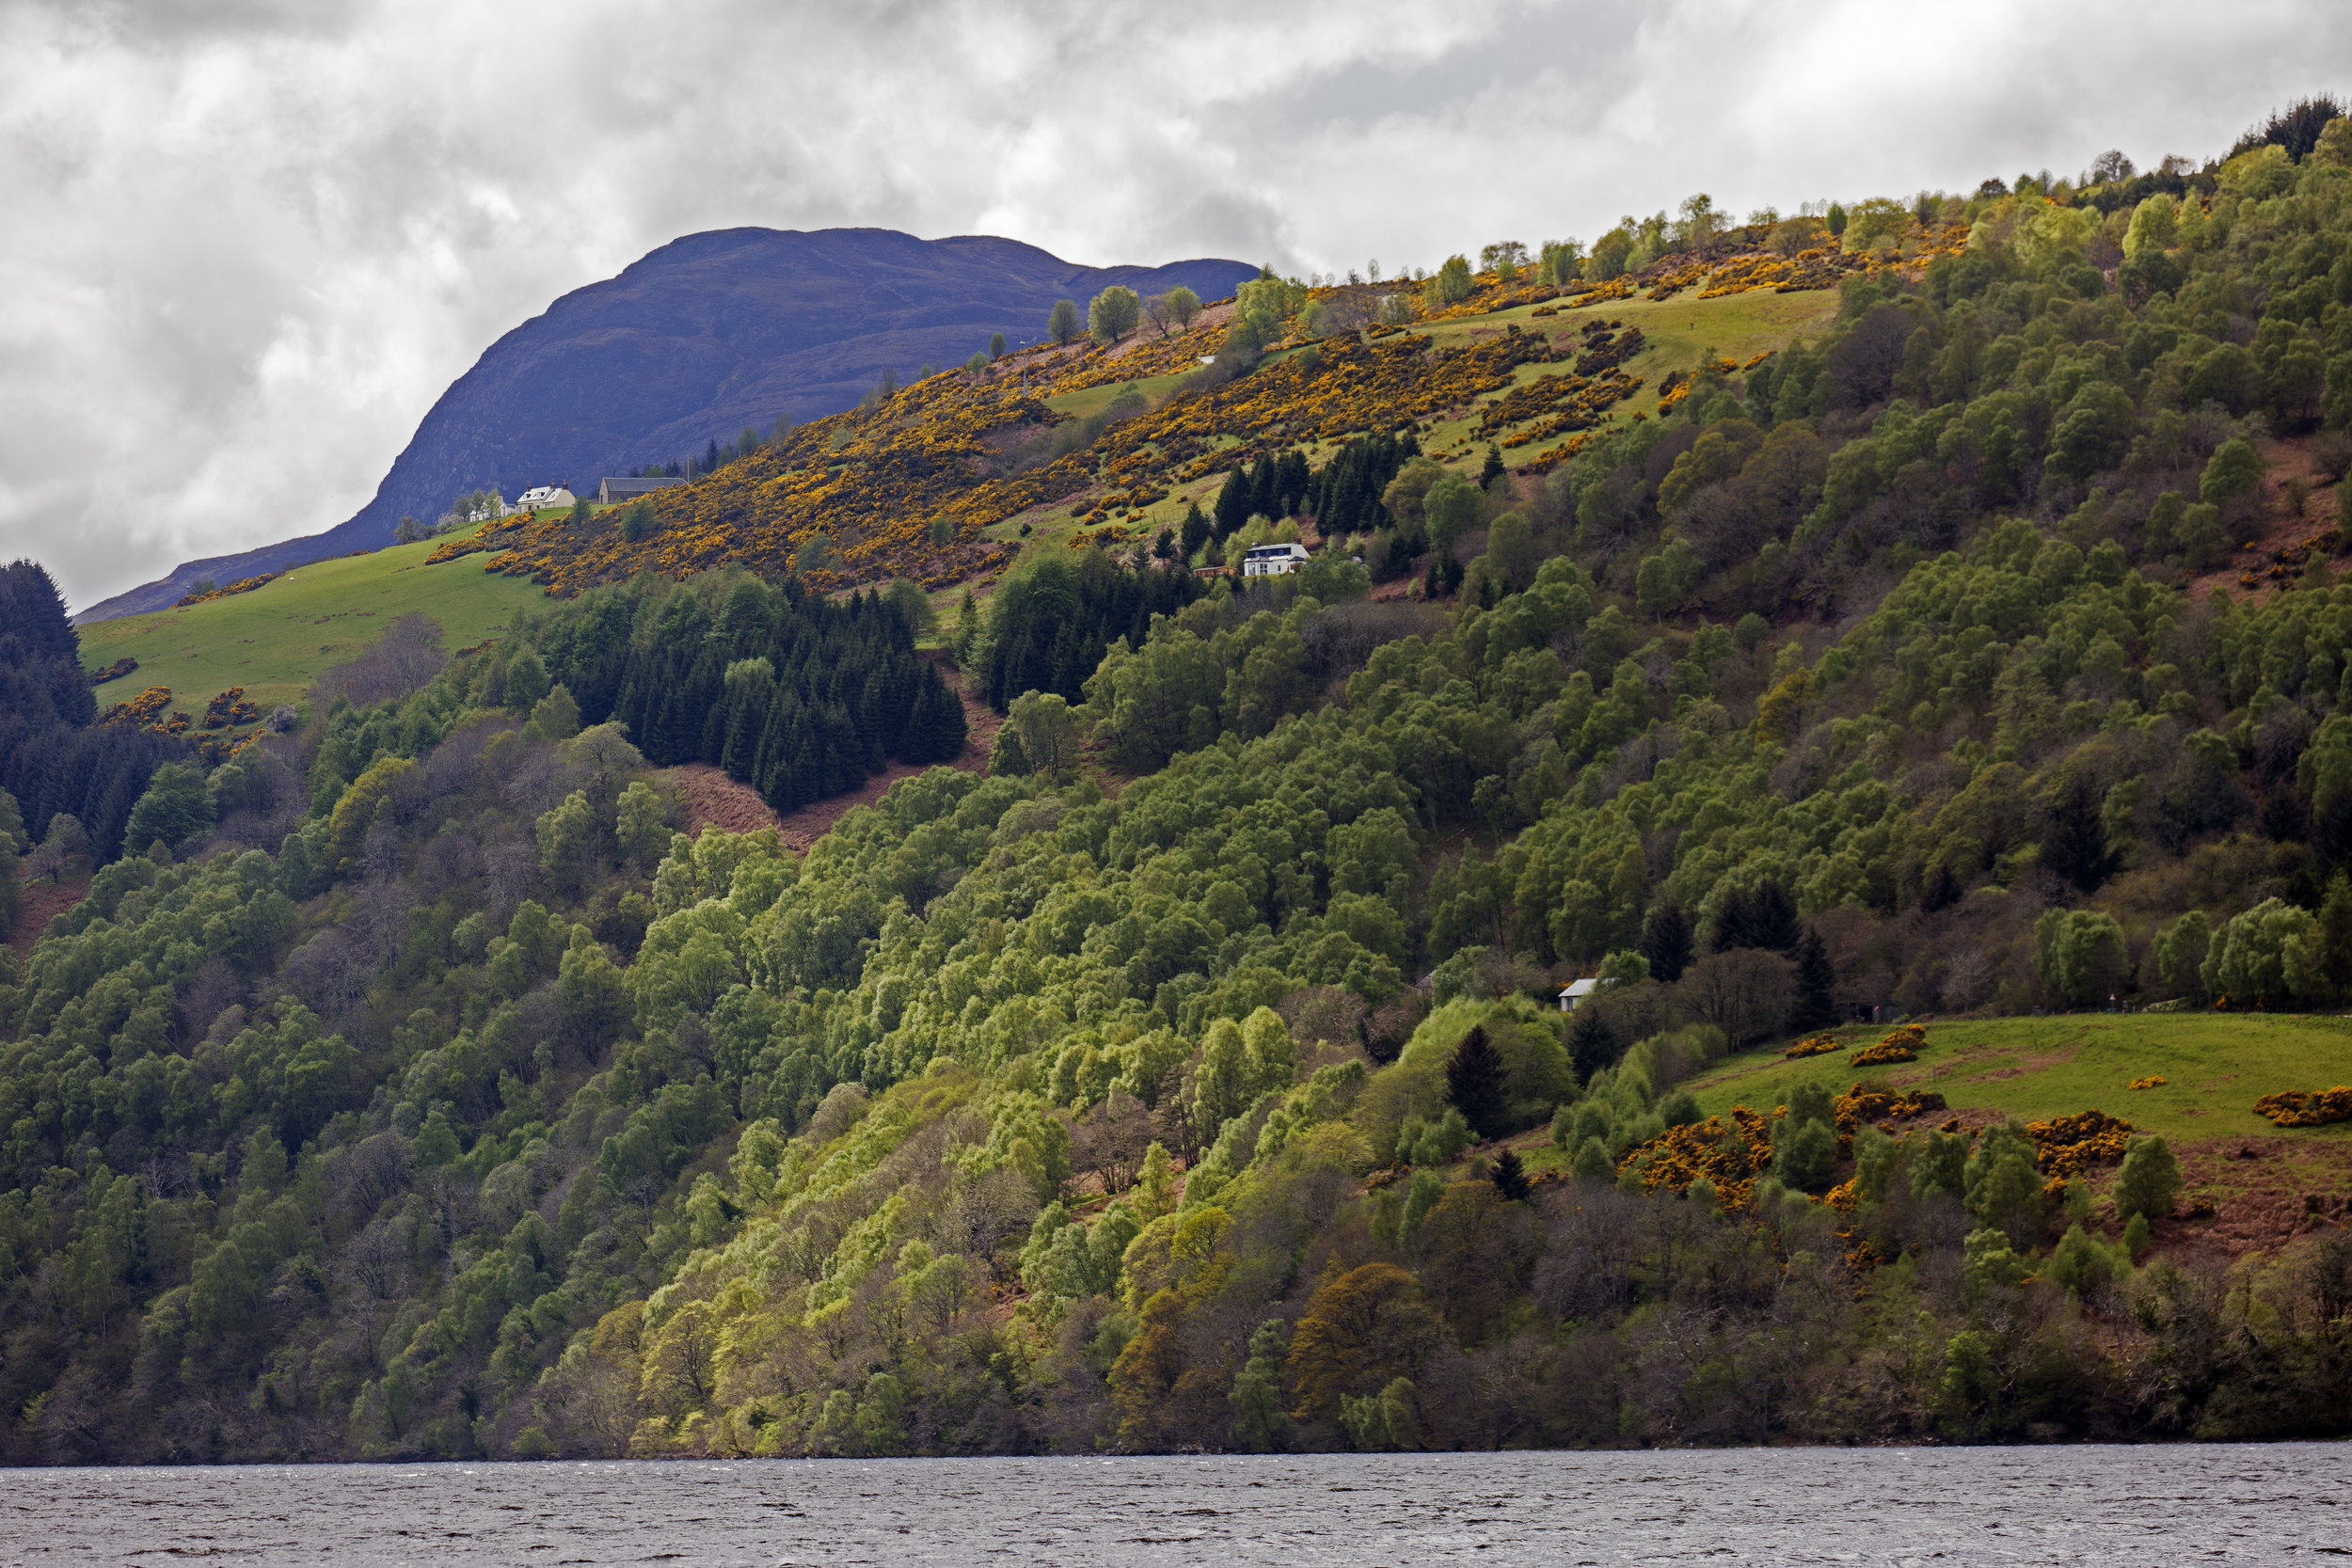 The scenery along Loch Ness just gets better and better.